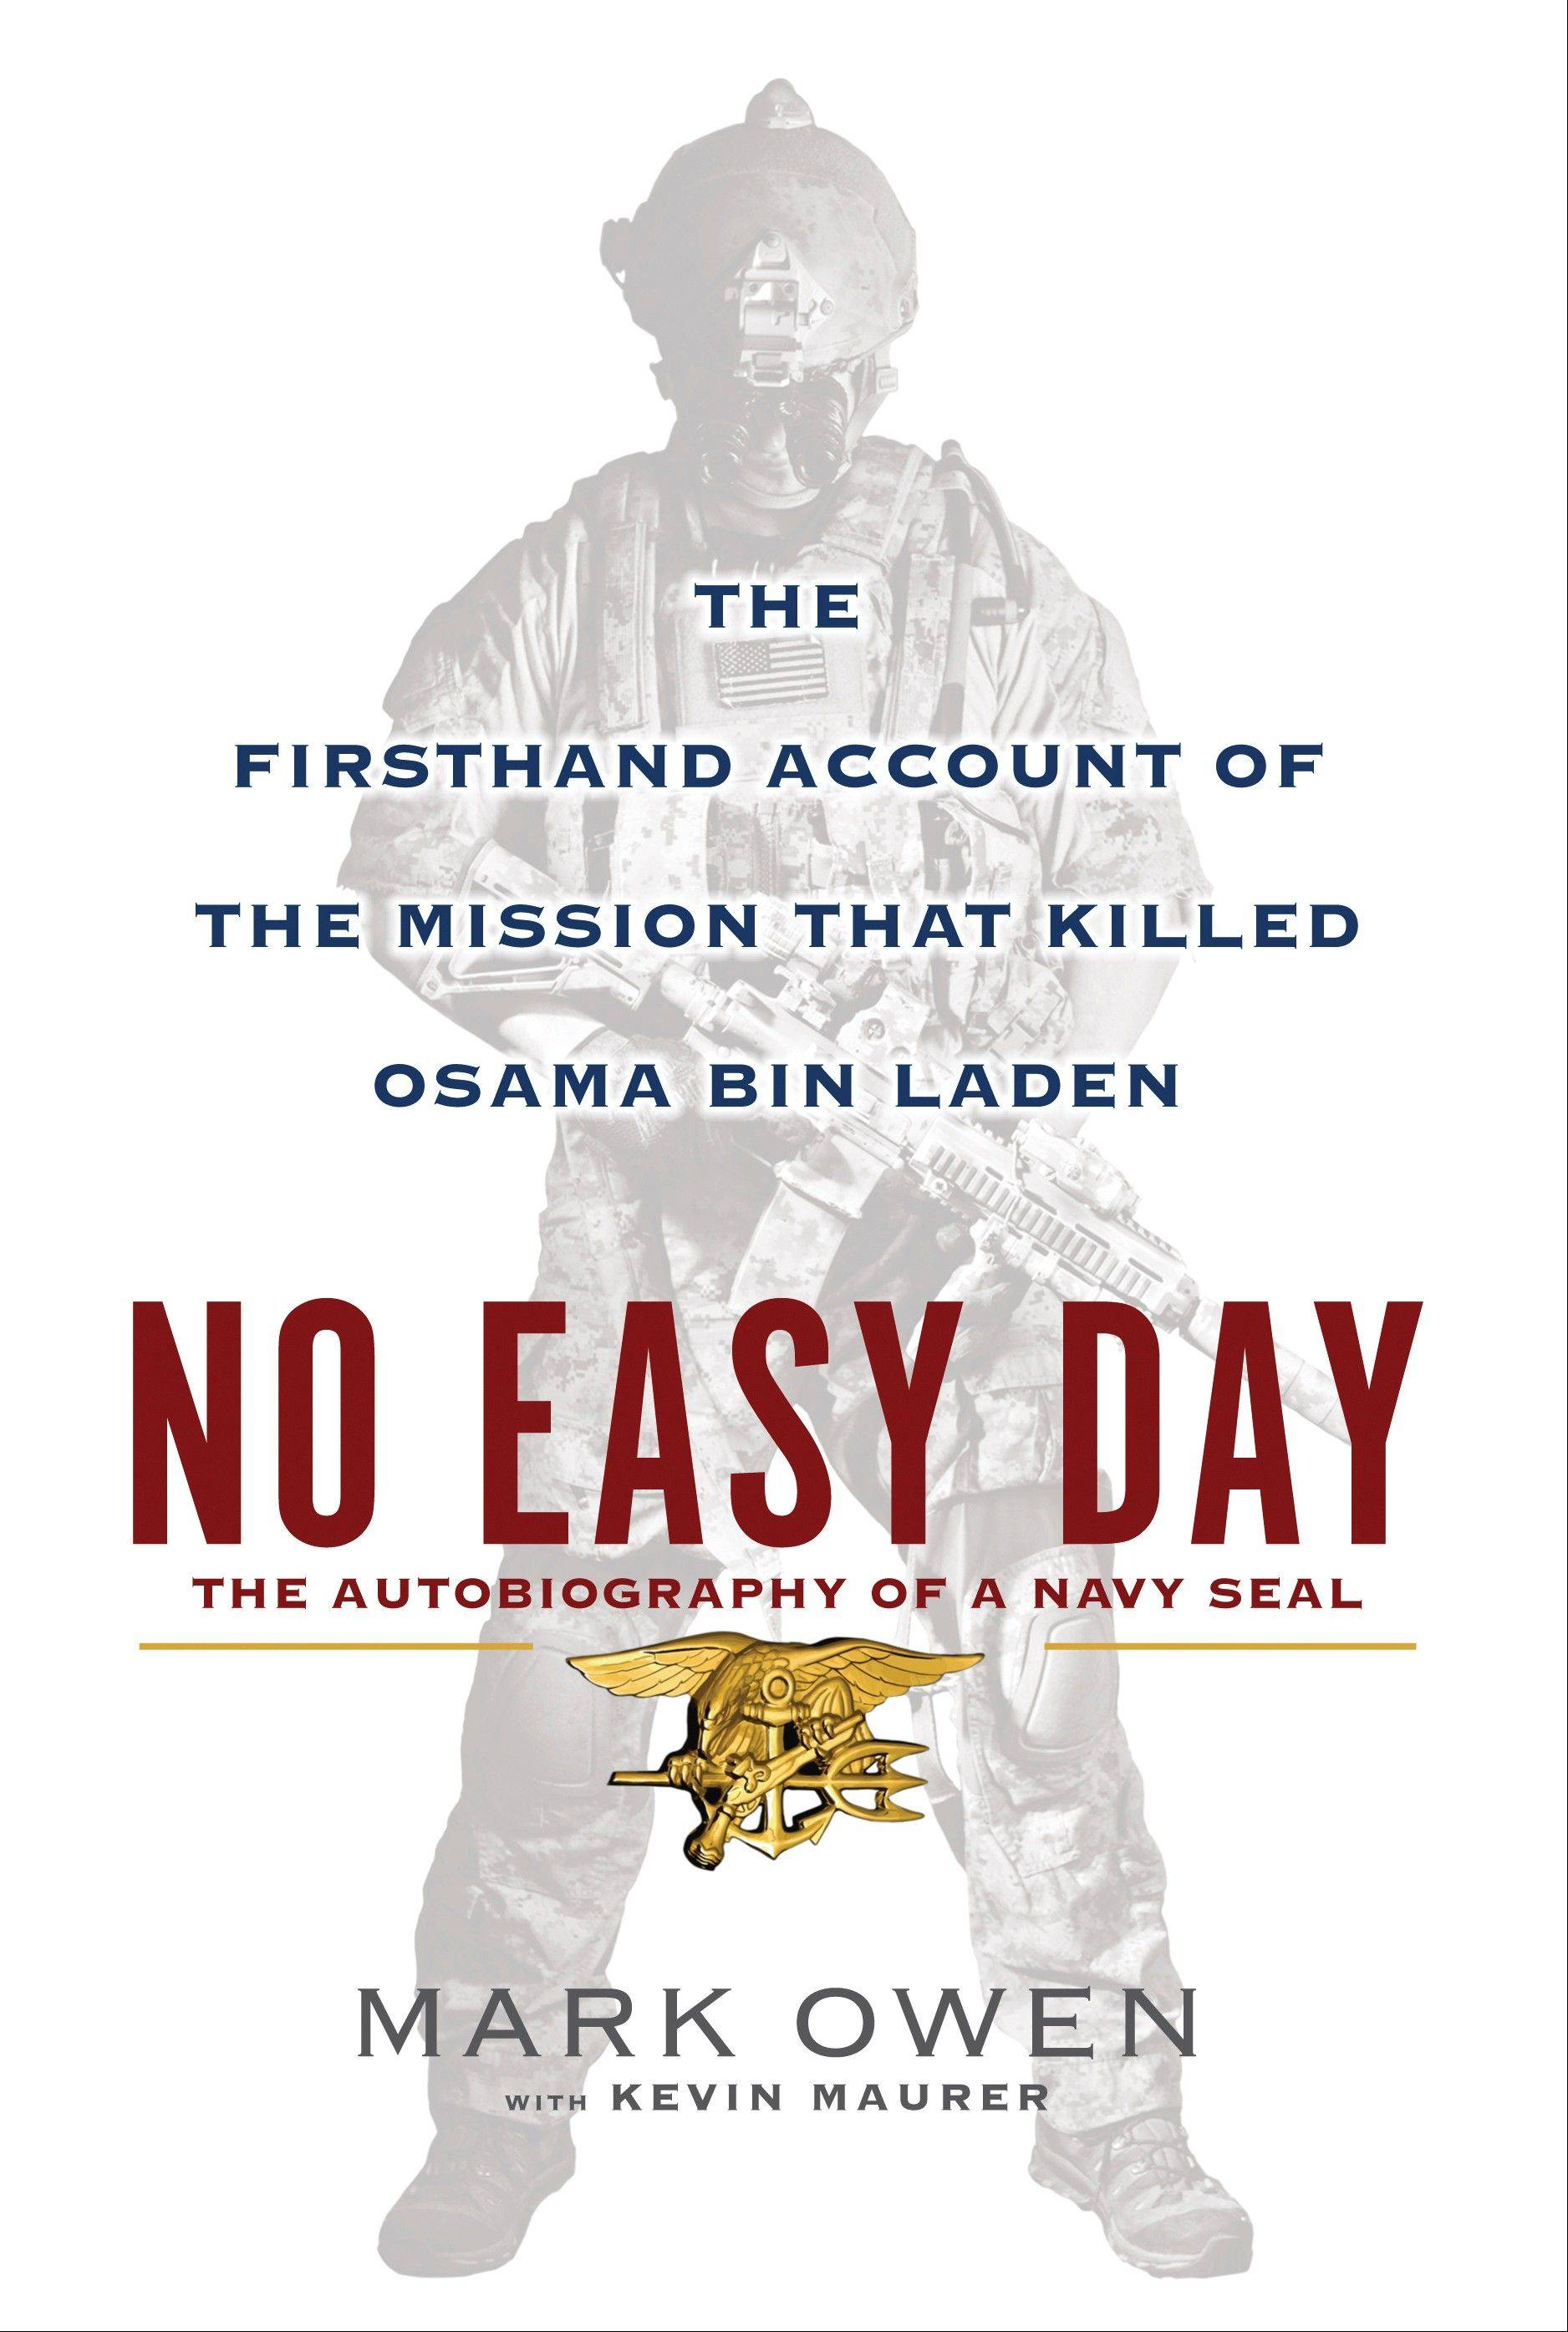 Defense Secretary Leon Panetta is suggesting that a retired Navy SEAL be punished for writing a book giving an insider's account of the U.S. raid that killed terrorist leader Osama bin Laden.